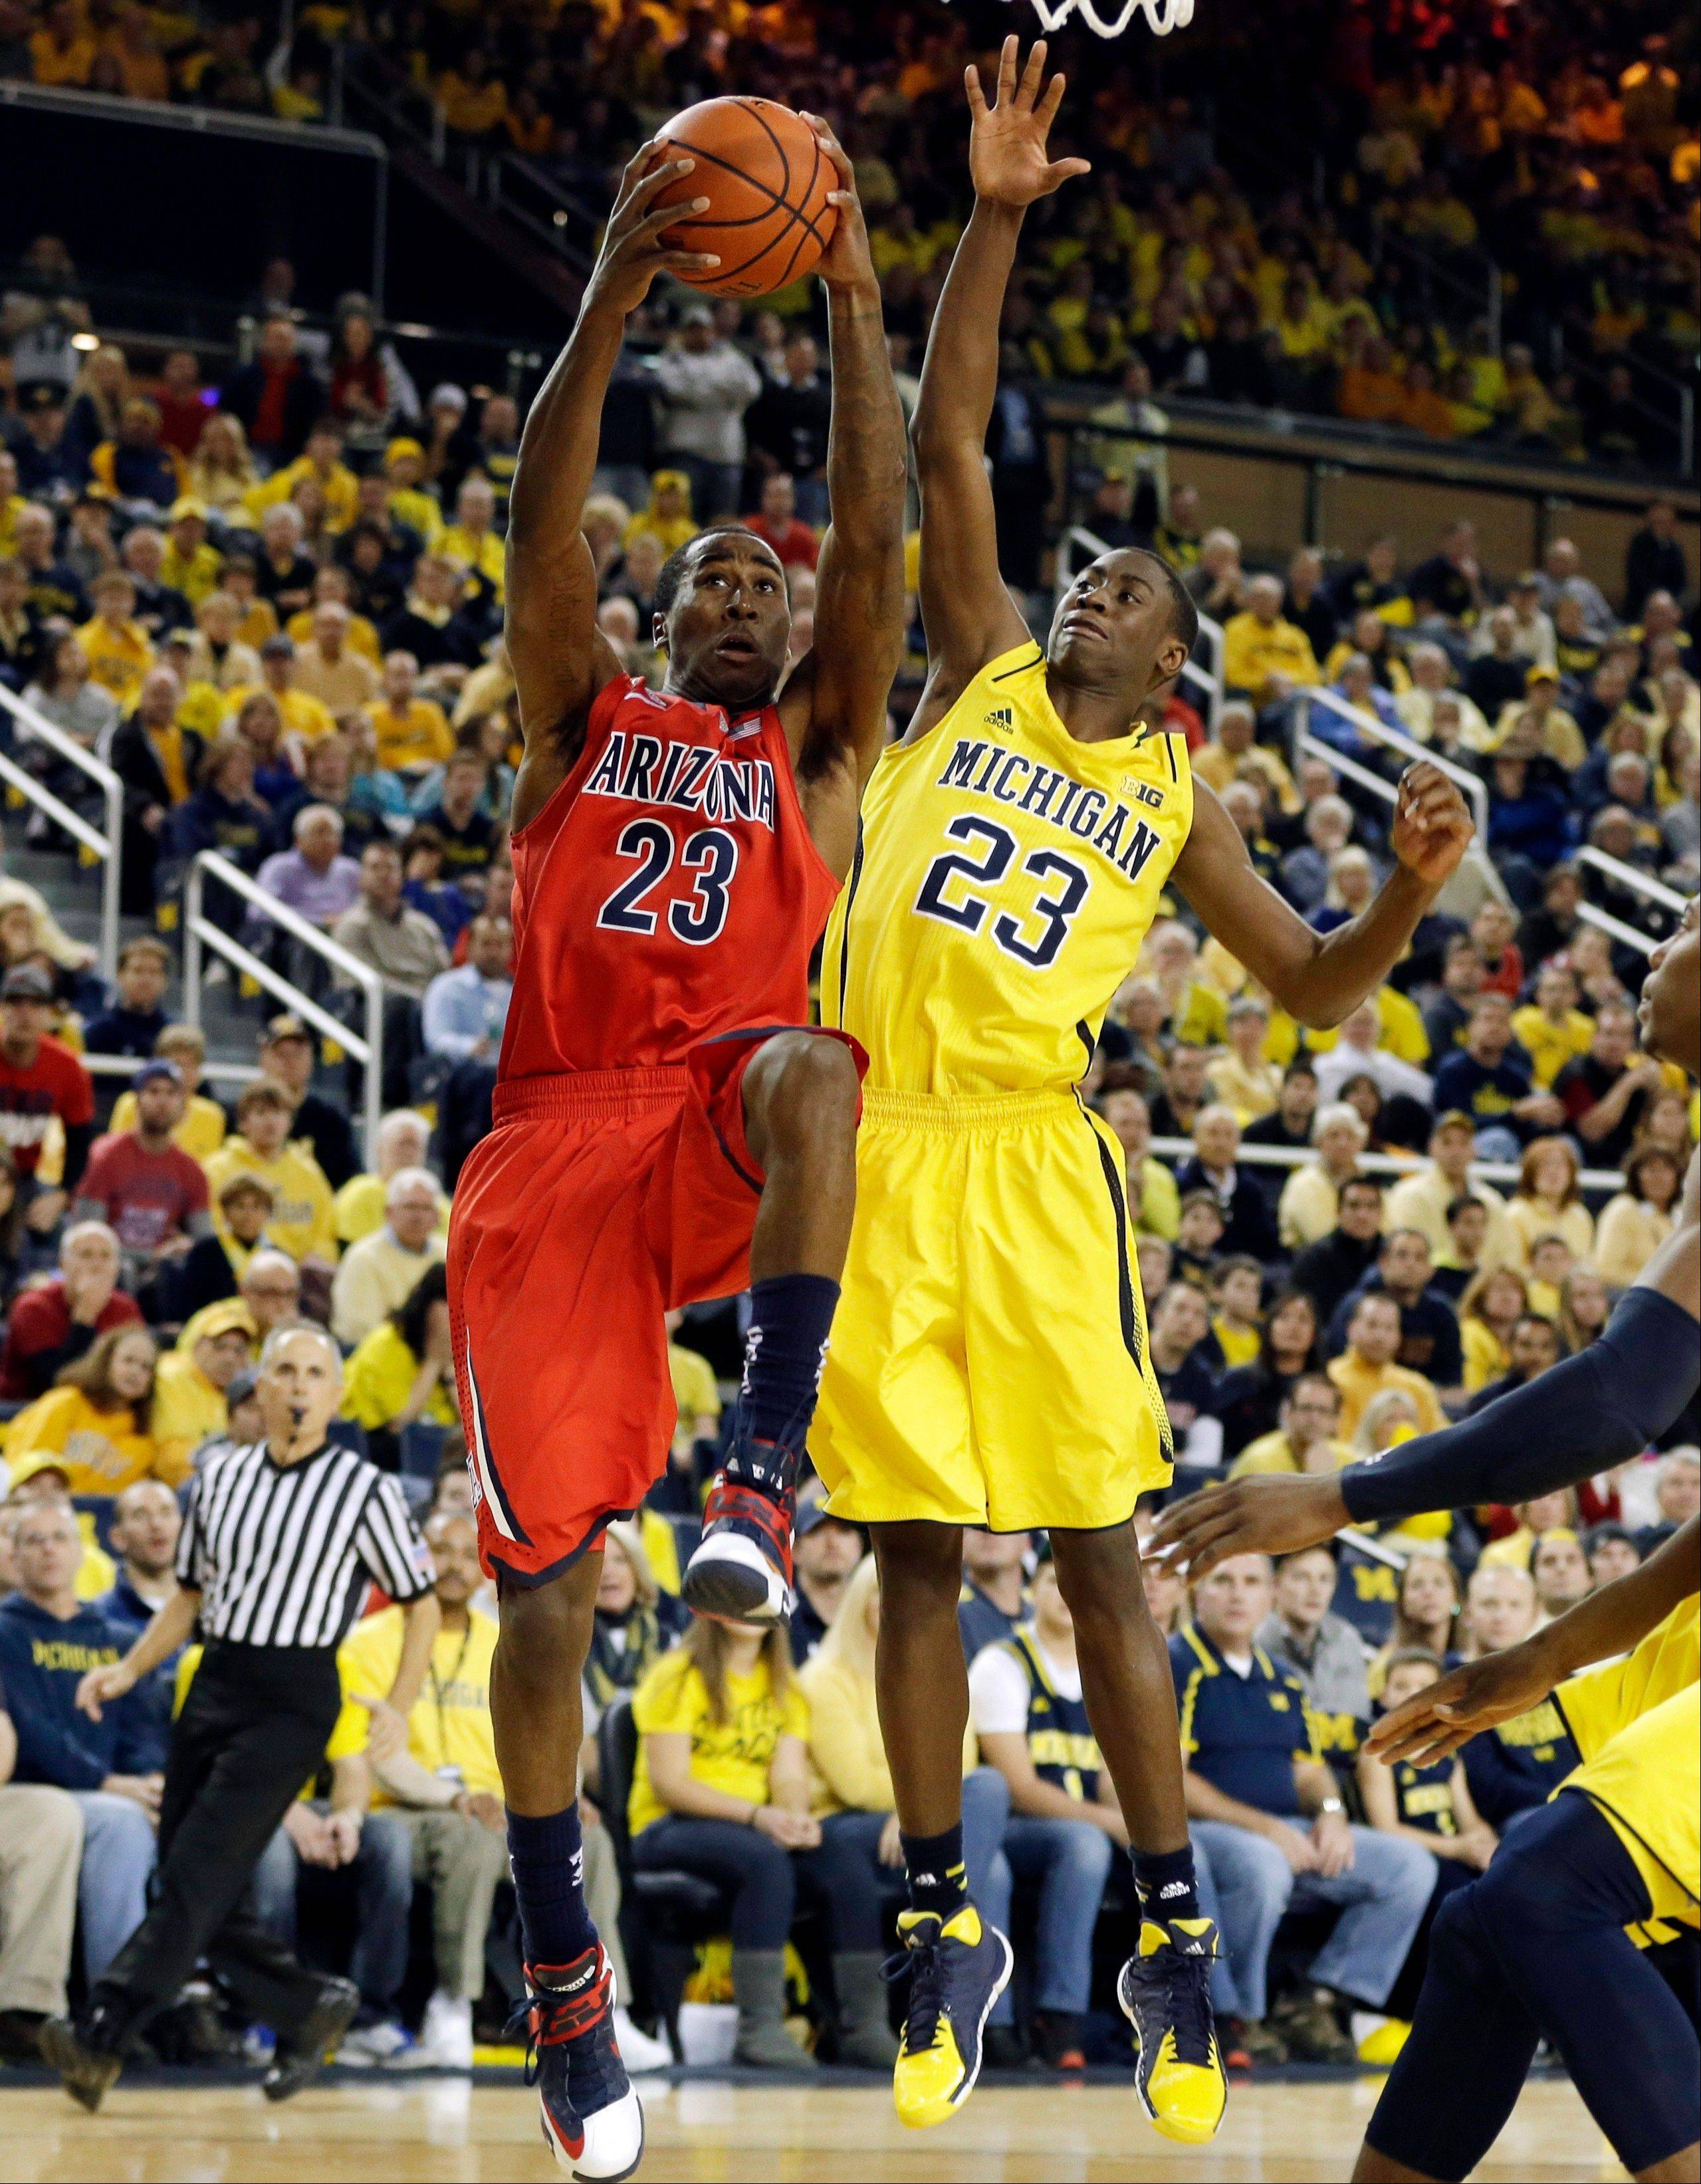 Arizona forward Rondae Hollis-Jefferson (23) is defended by Michigan guard Caris LeVert (23) during the second half of an NCAA college basketball game in Ann Arbor, Mich., Saturday, Dec. 14, 2013. (AP Photo/Carlos Osorio)